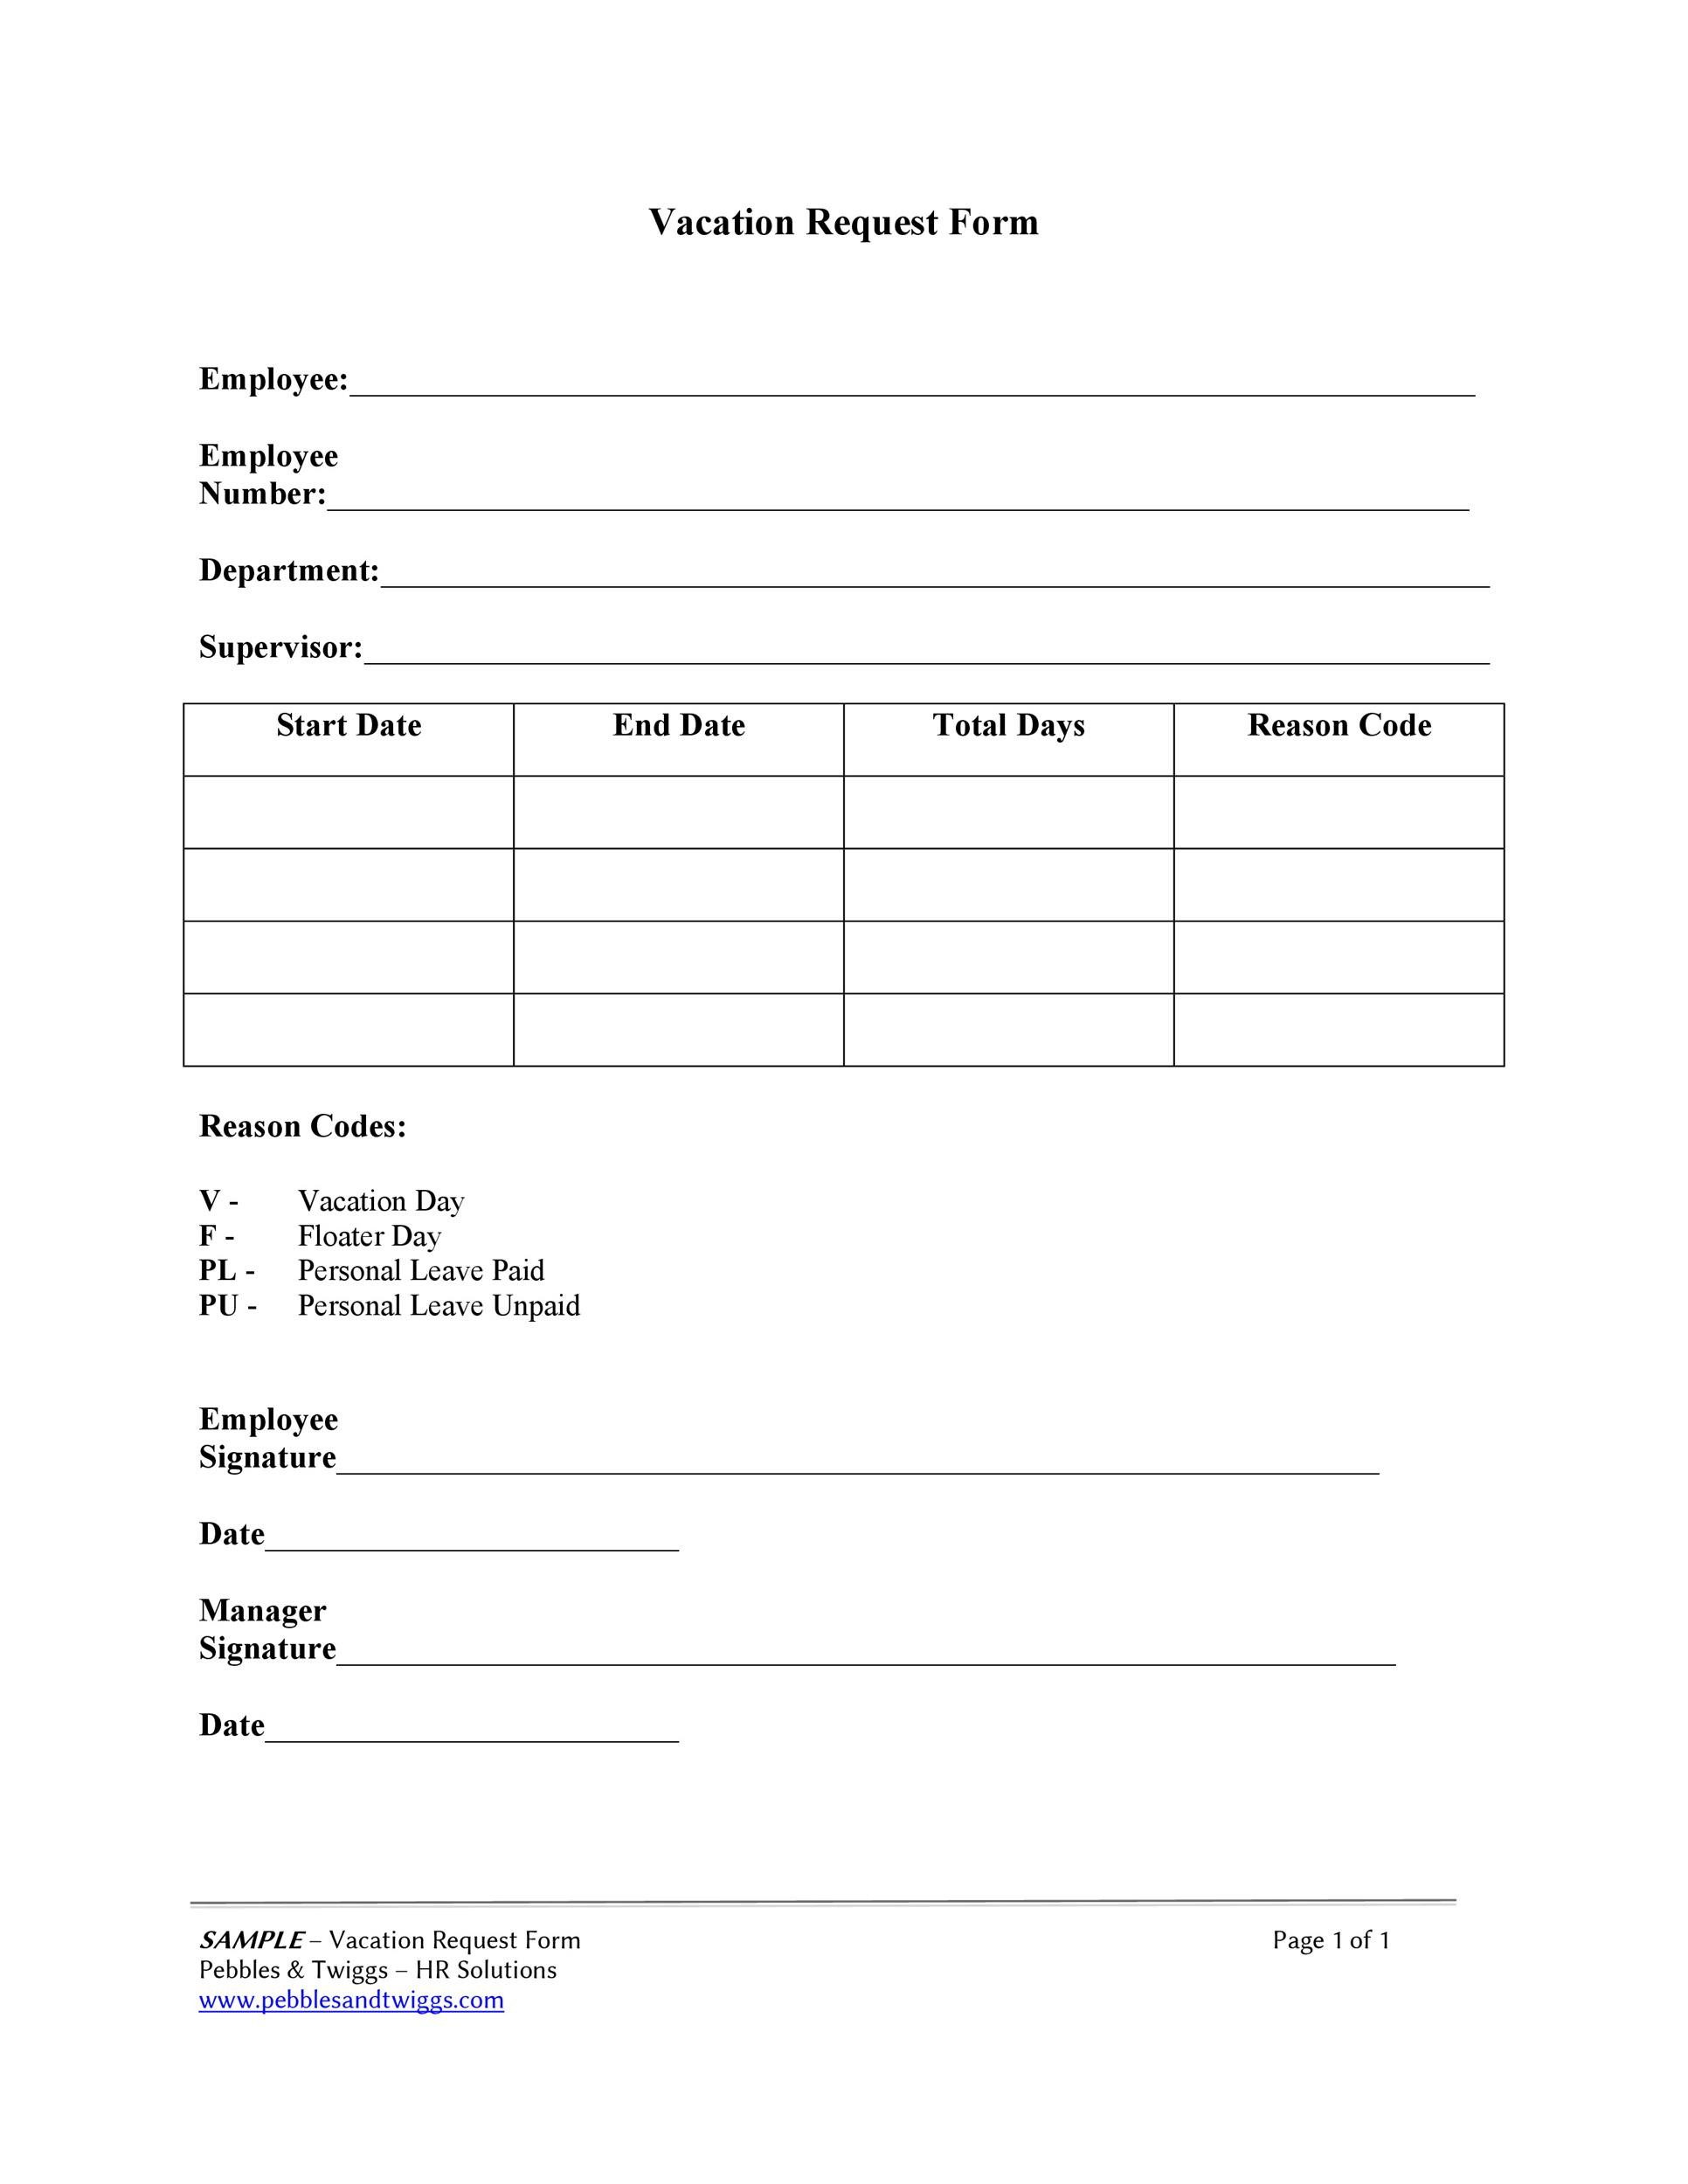 Free vacation request form 33